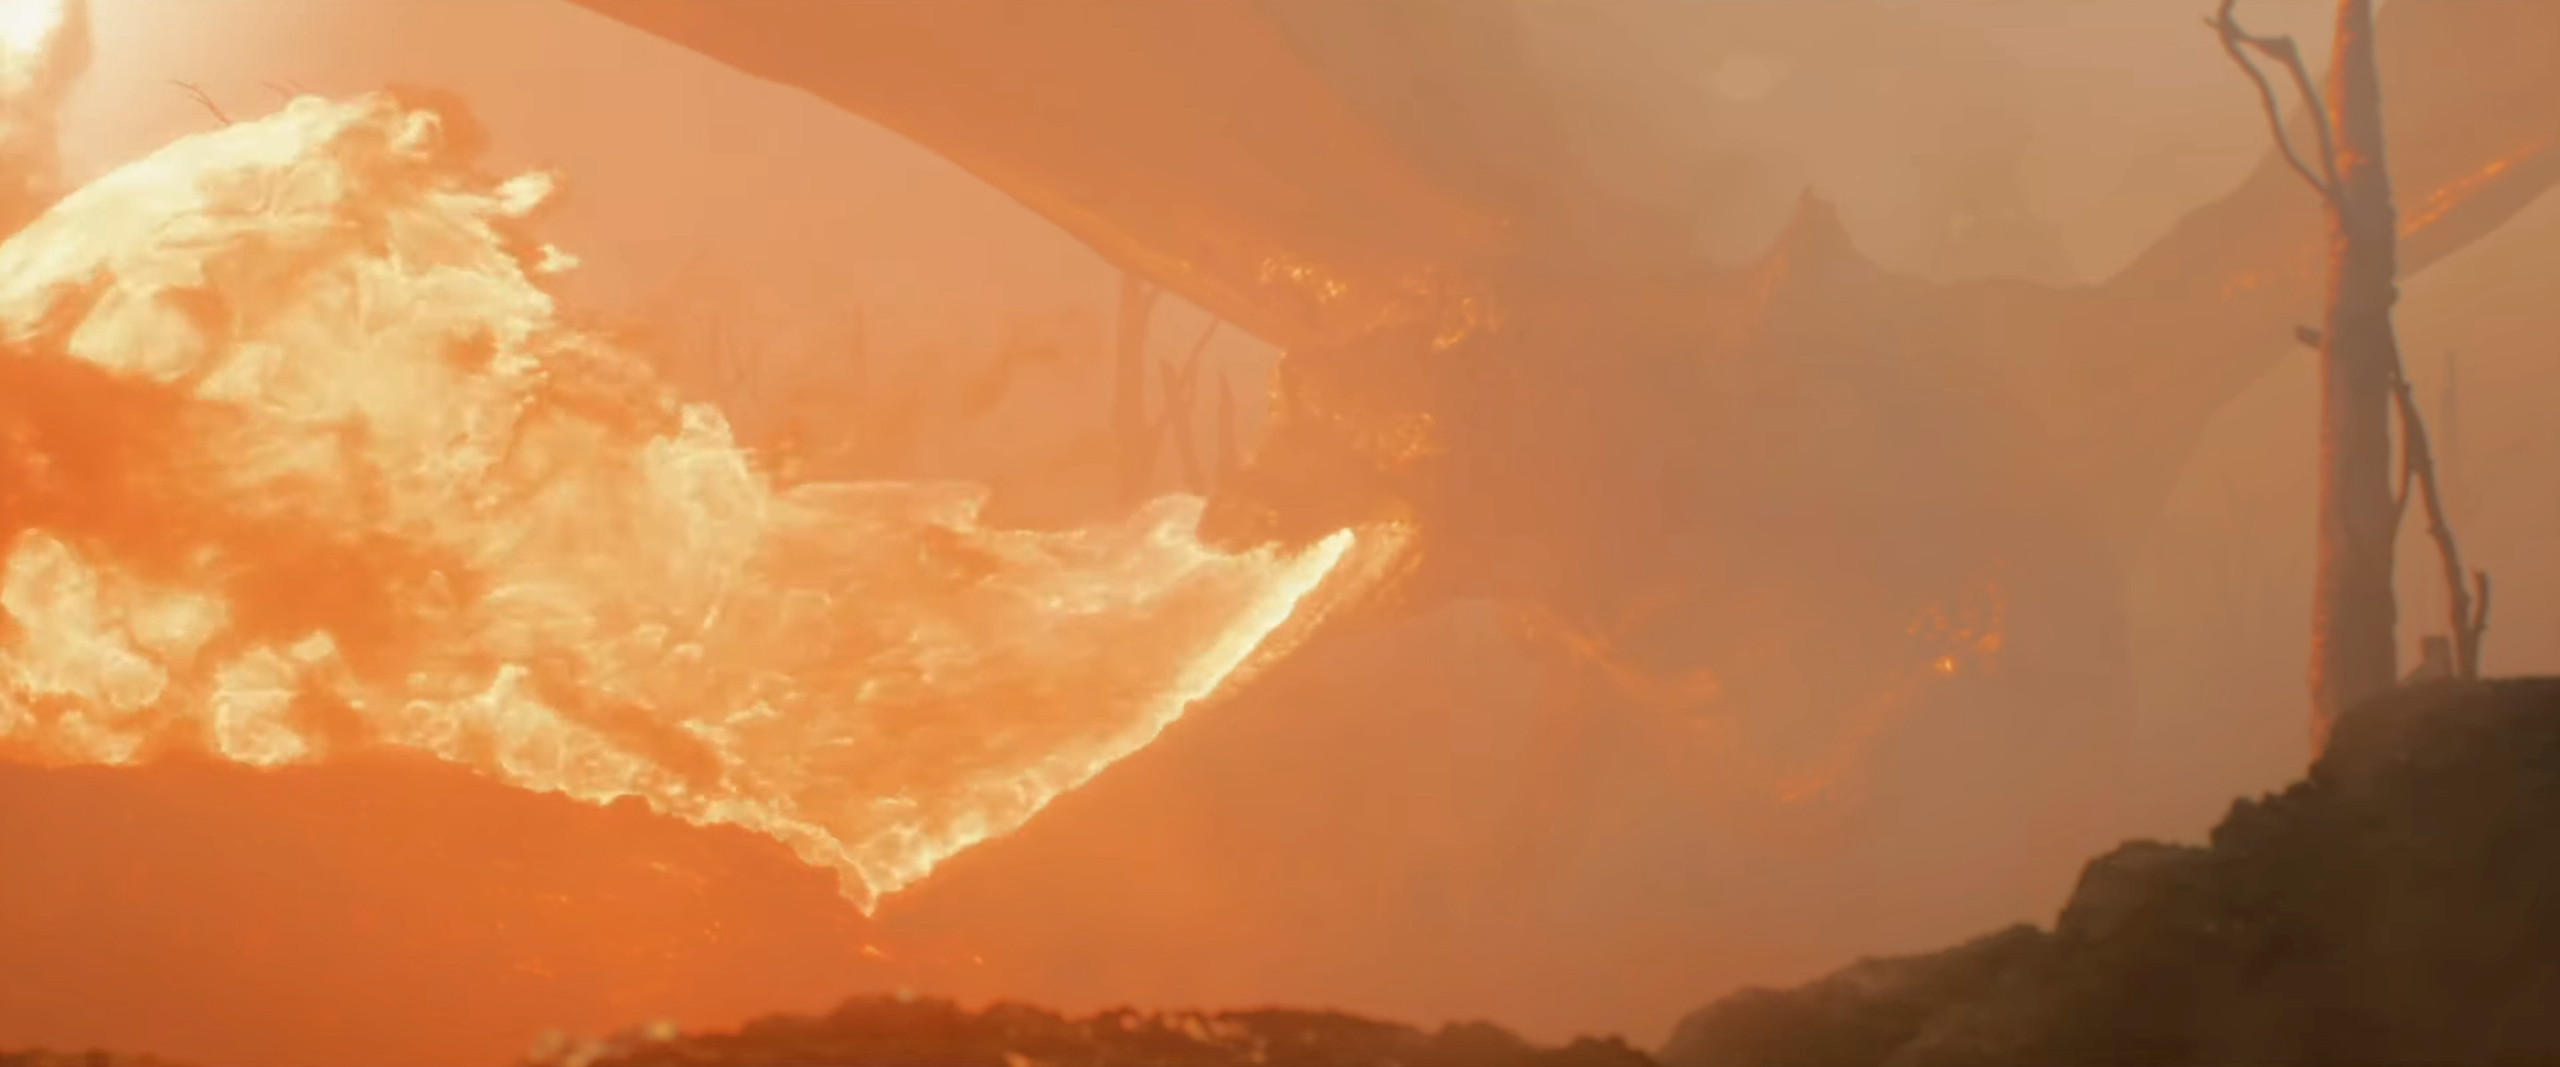 In The New TolkienTrailer, It's Smaug's Turn To Head To World War I